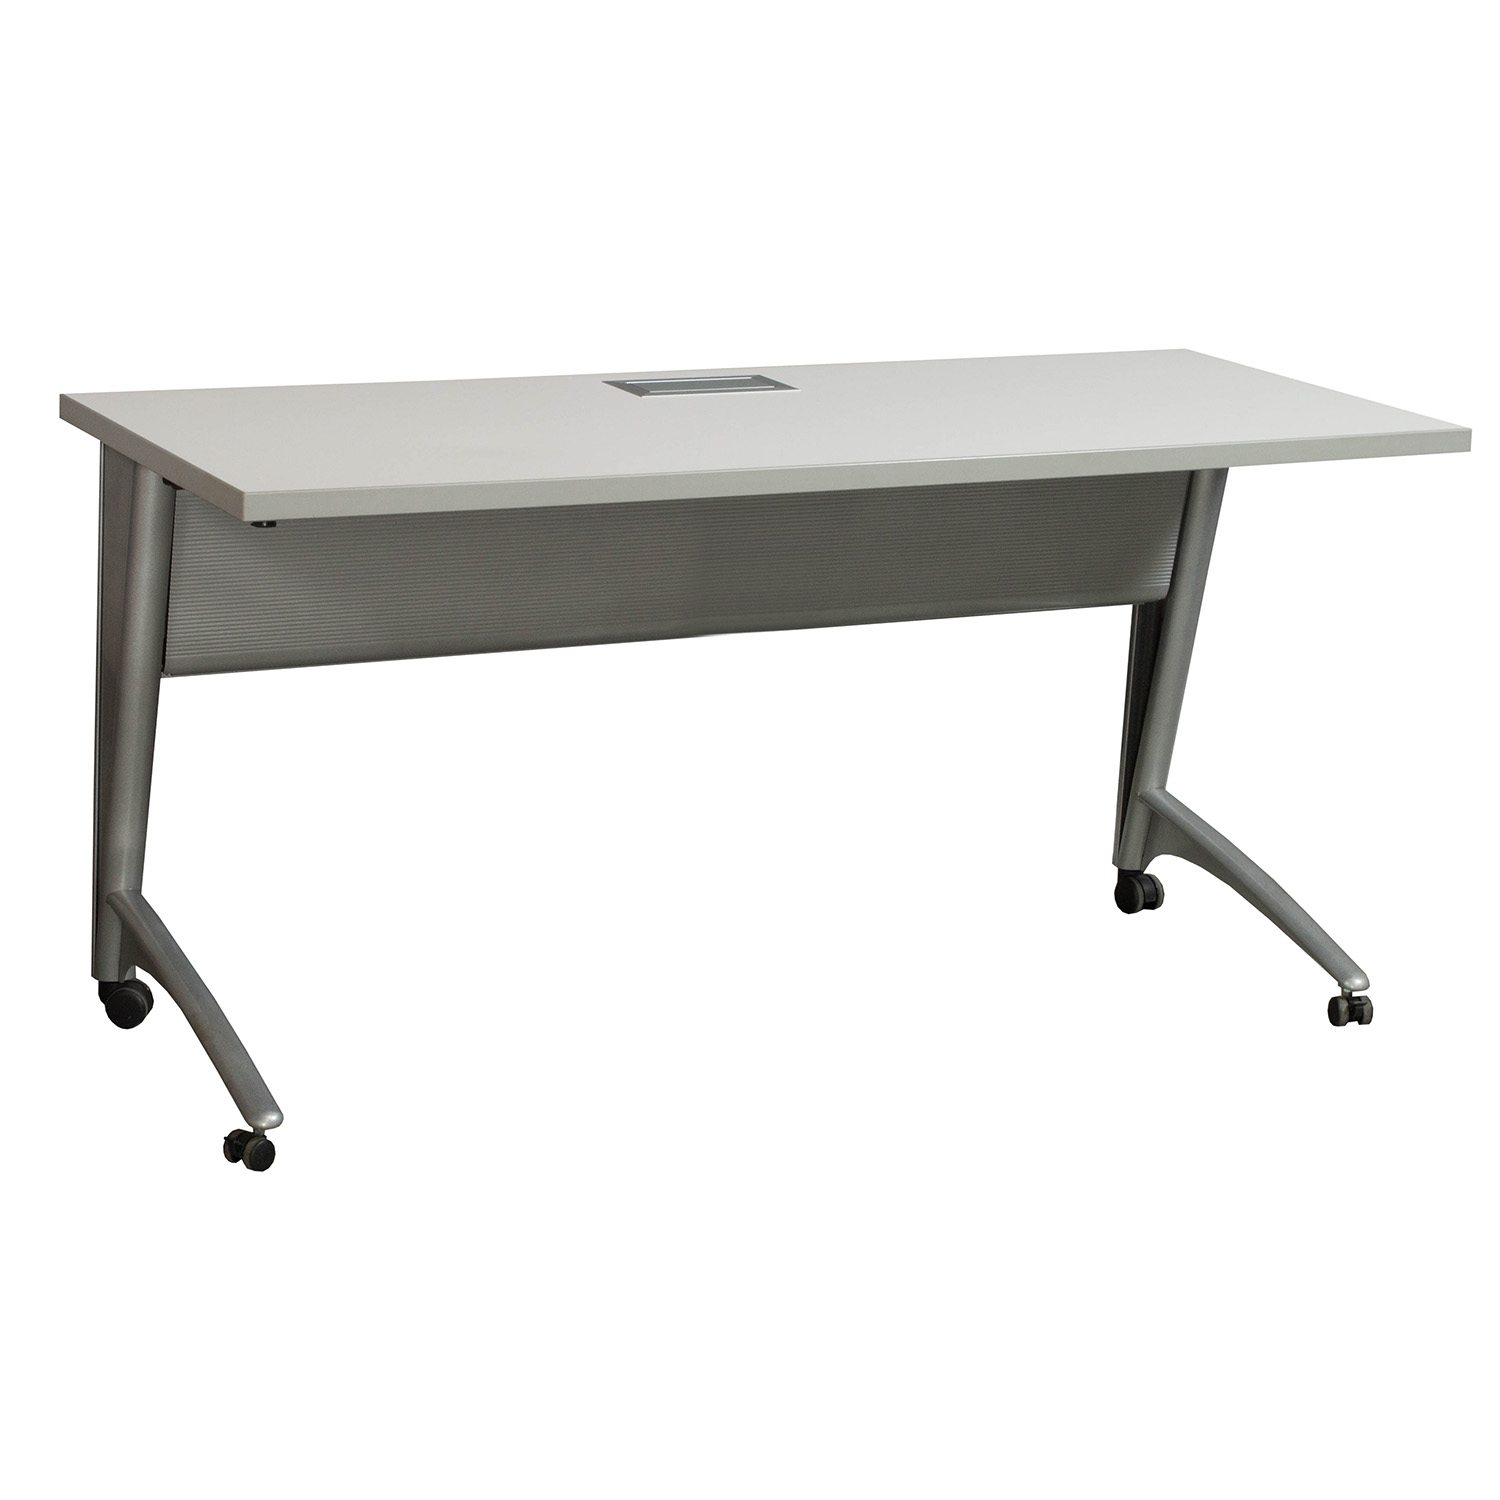 Nucraft Saber Used Mobile Training Table White National